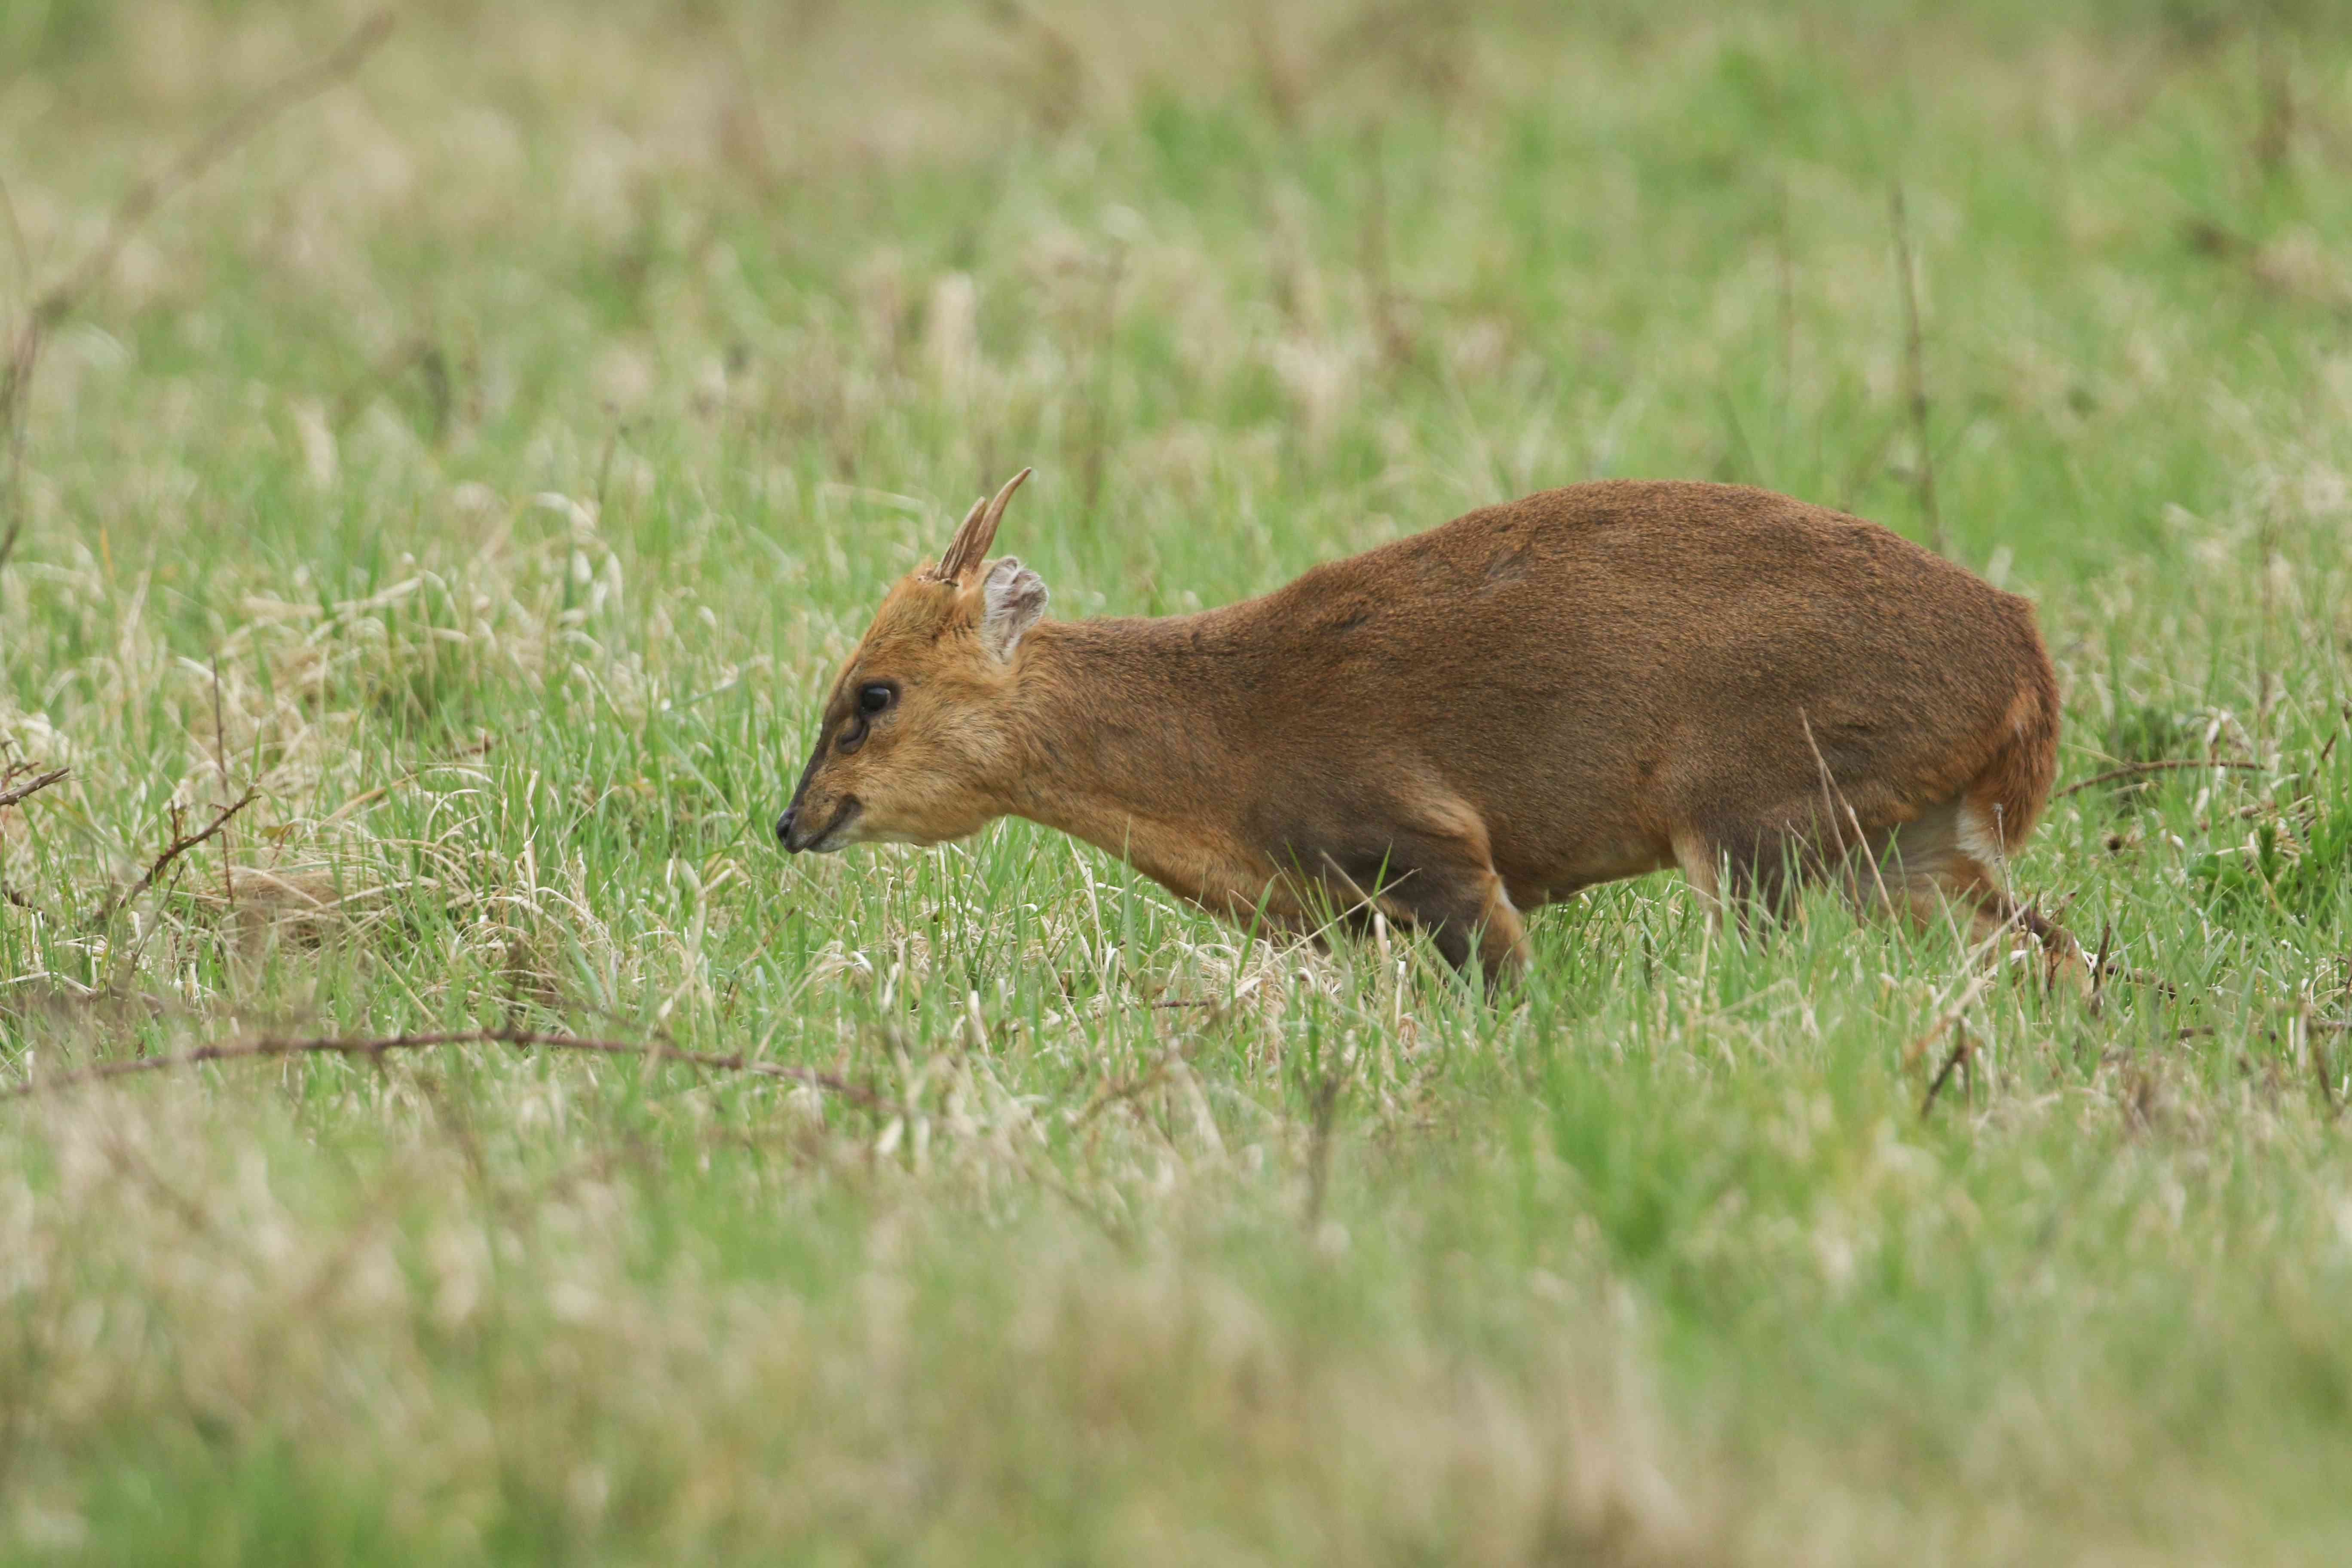 A magnificent buck Muntjac Deer, Muntiacus reevesi, feeding in a field at the edge of woodland in the UK.